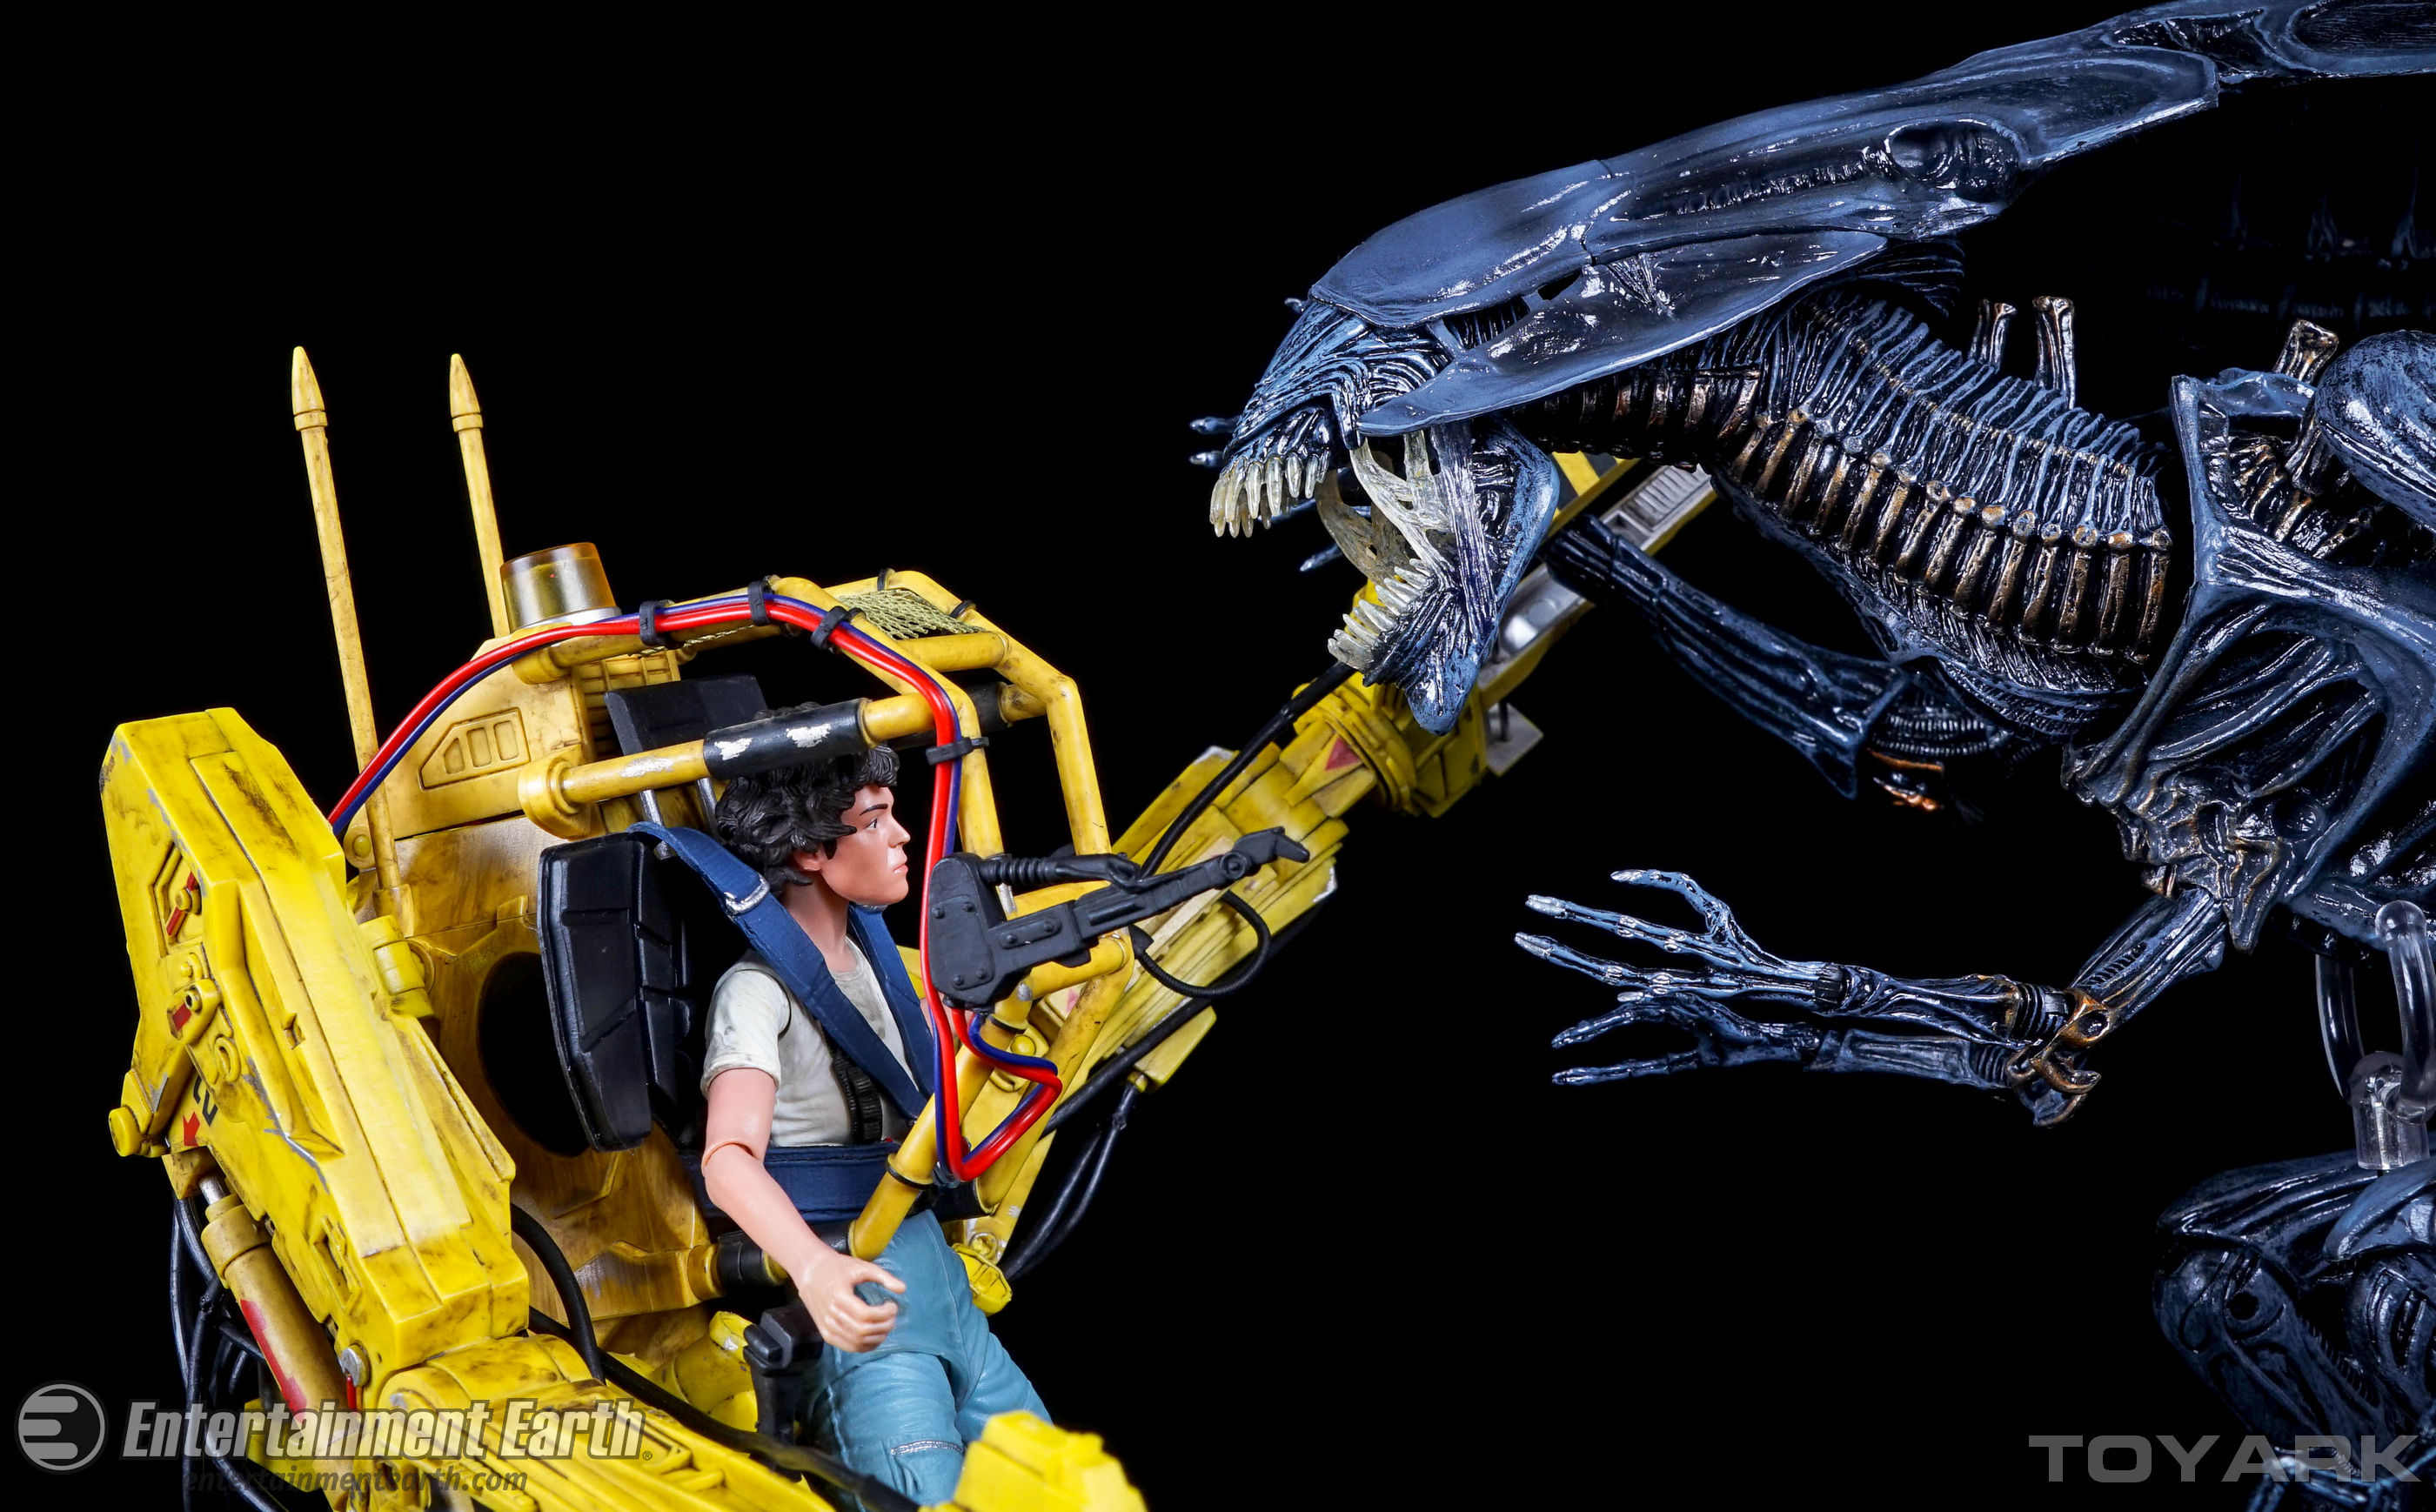 http://news.toyark.com/wp-content/uploads/sites/4/2015/10/NECA-Aliens-Power-Loader-059.jpg